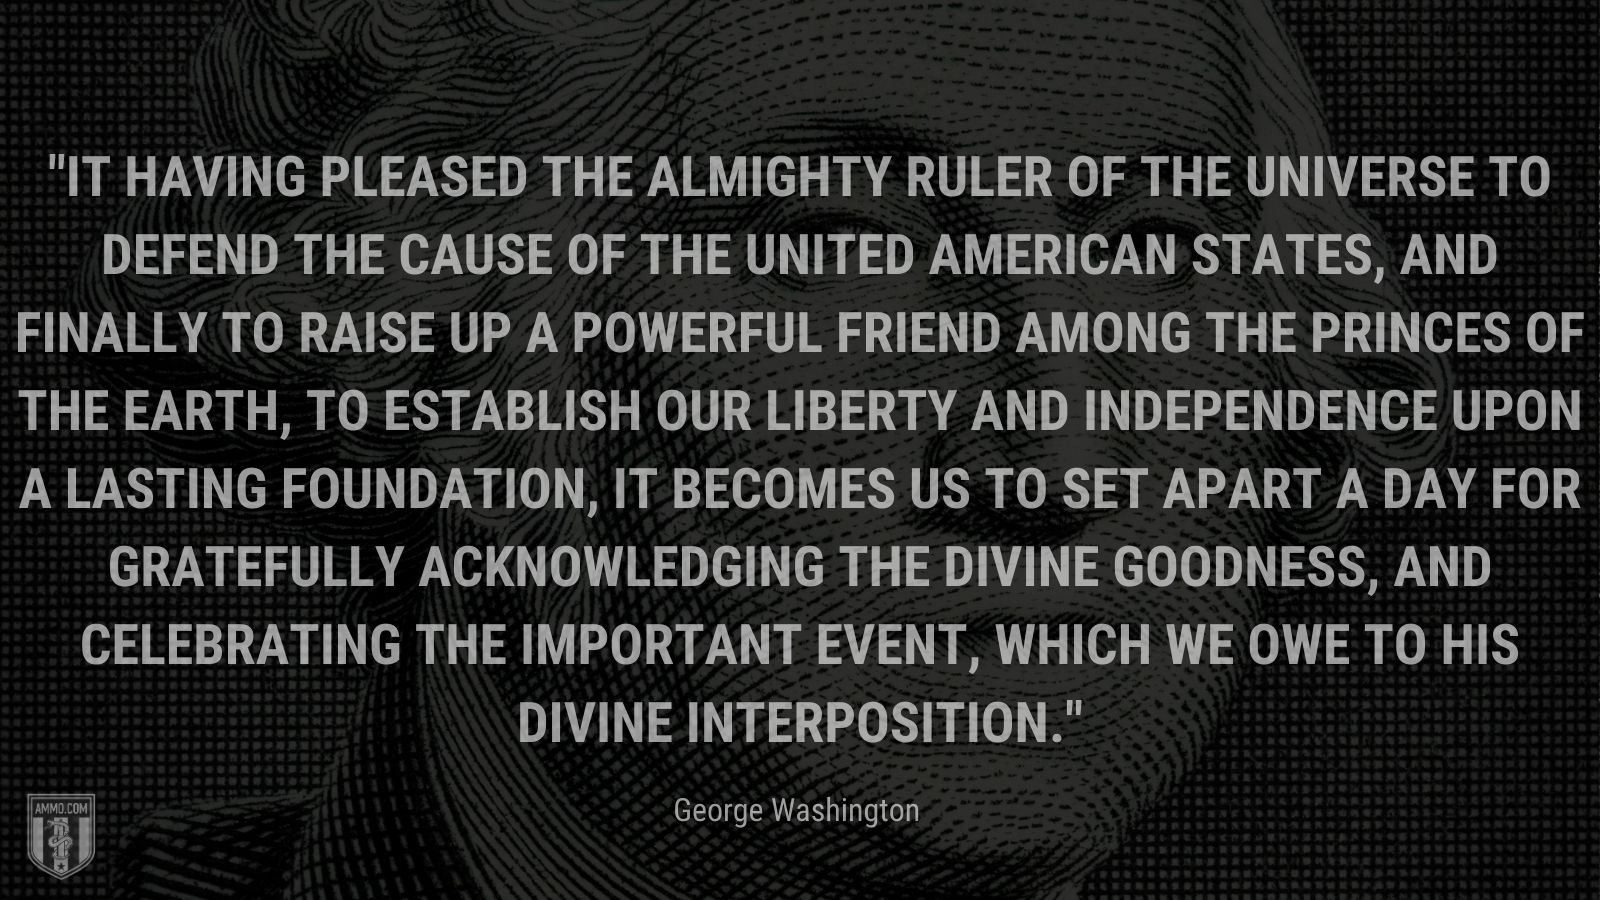 """""""It having pleased the Almighty Ruler of the universe to defend the cause of the United American States, and finally to raise up a powerful friend among the princes of the earth, to establish our liberty and independence upon a lasting foundation, it becomes us to set apart a day for gratefully acknowledging the divine goodness, and celebrating the important event, which we owe to His divine interposition."""" - George Washington"""